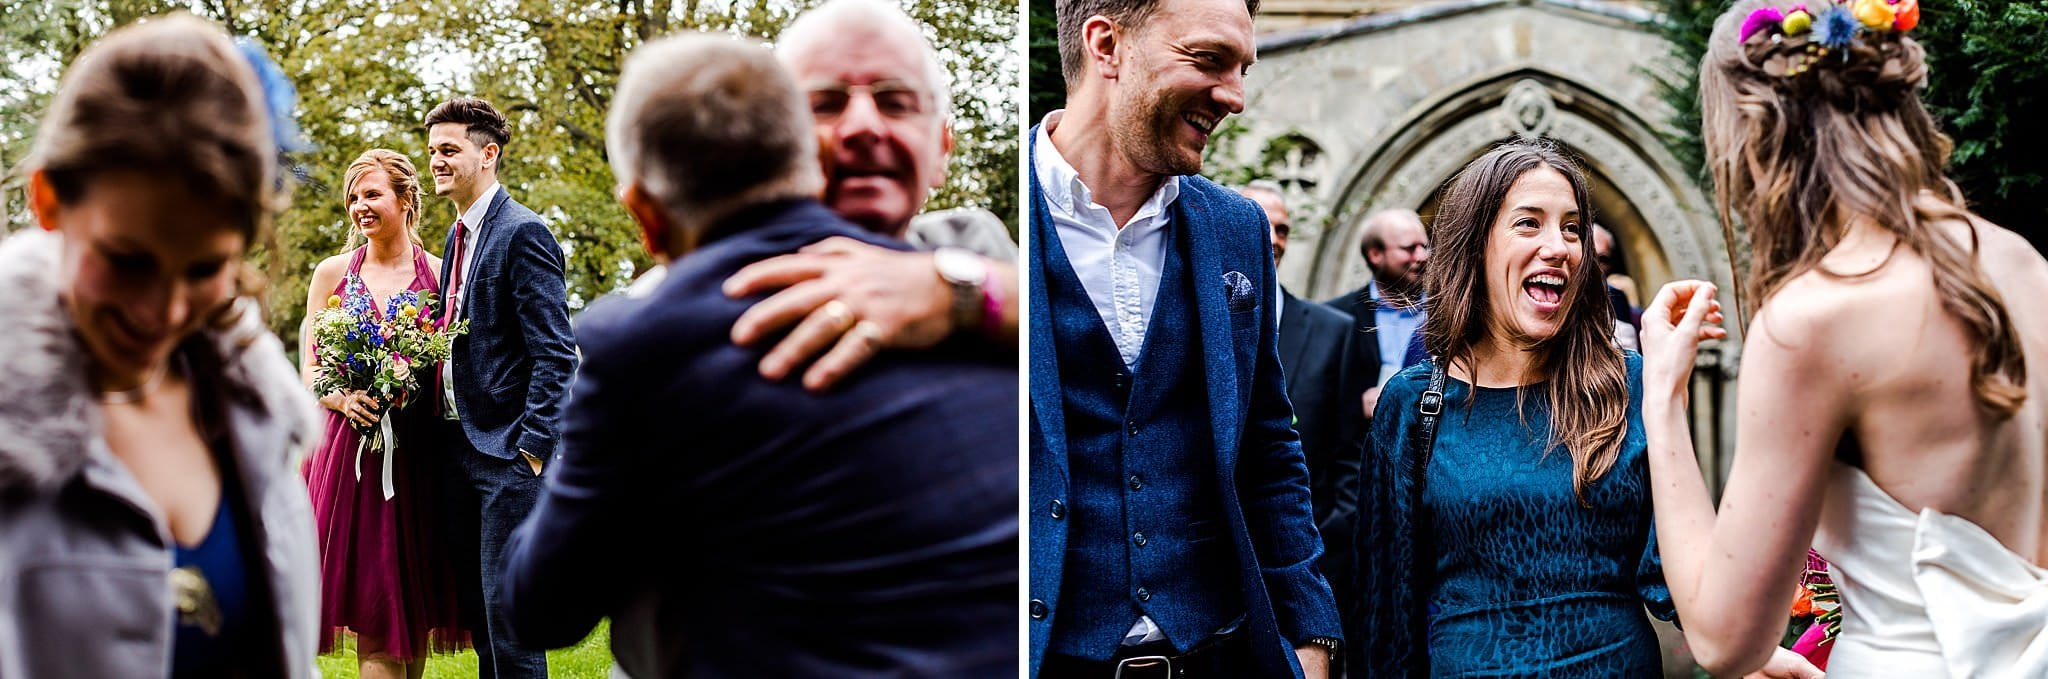 Candid photos of guests smiling and greeting each other at Sally & Ben's wedding